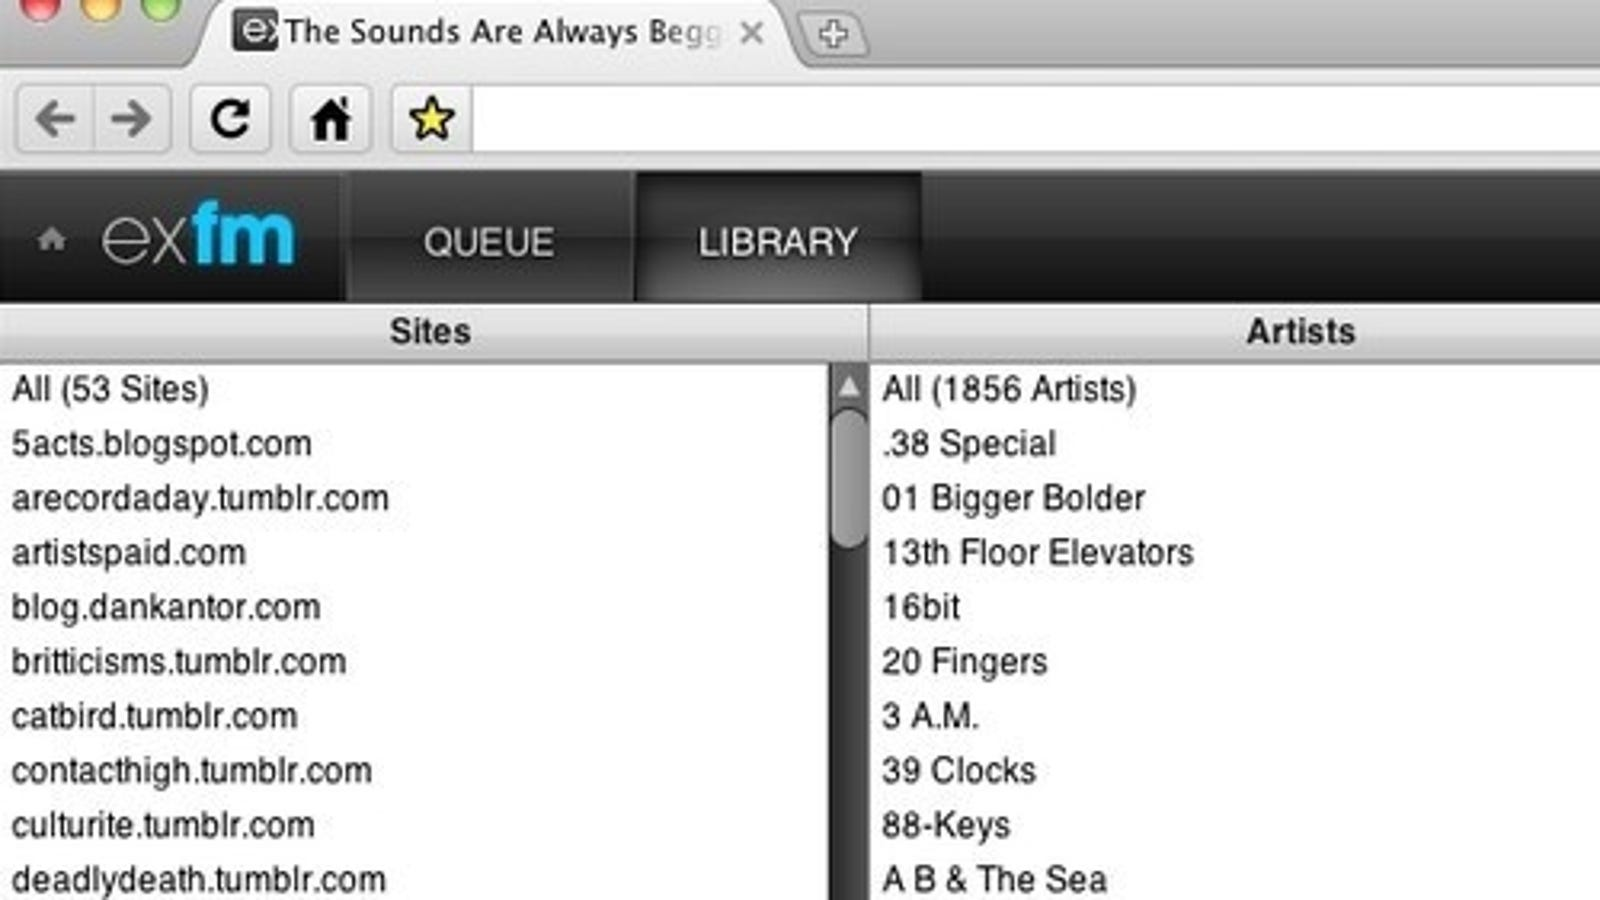 ExtensionFM Turns the Web into Your Personal Music Library